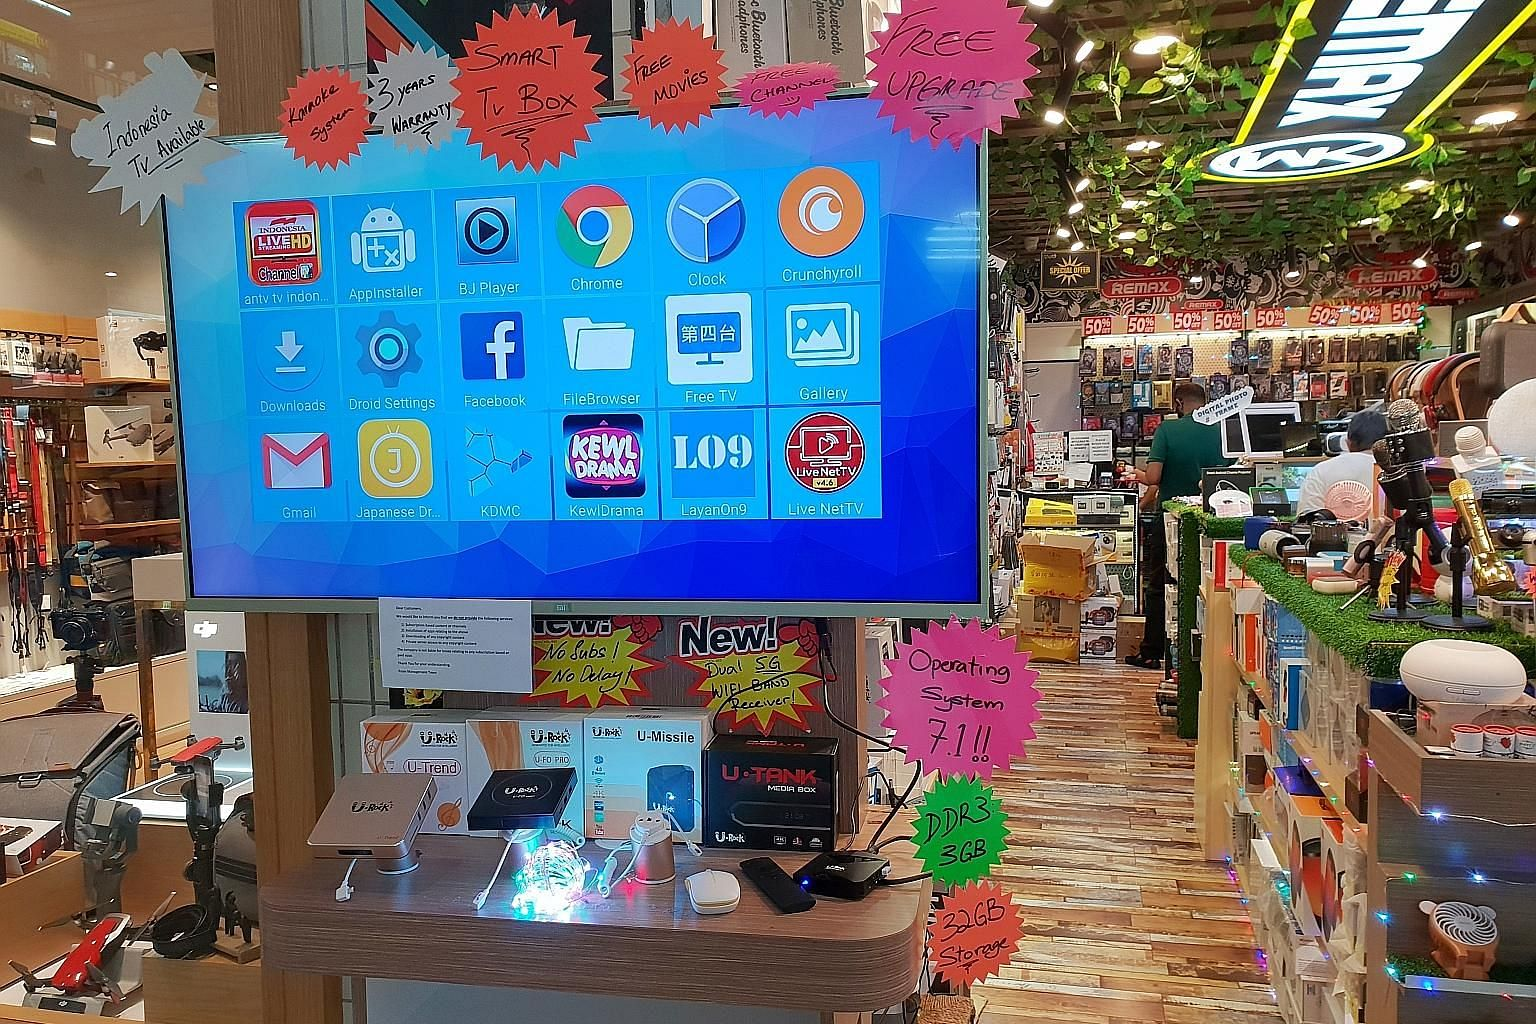 Android TV boxes for sale at Sim Lim Square. The legality of media streaming boxes has been a contentious area as copyright holders have found it difficult to resort to many of the usual legal avenues created in the DVD era against set-top box retail